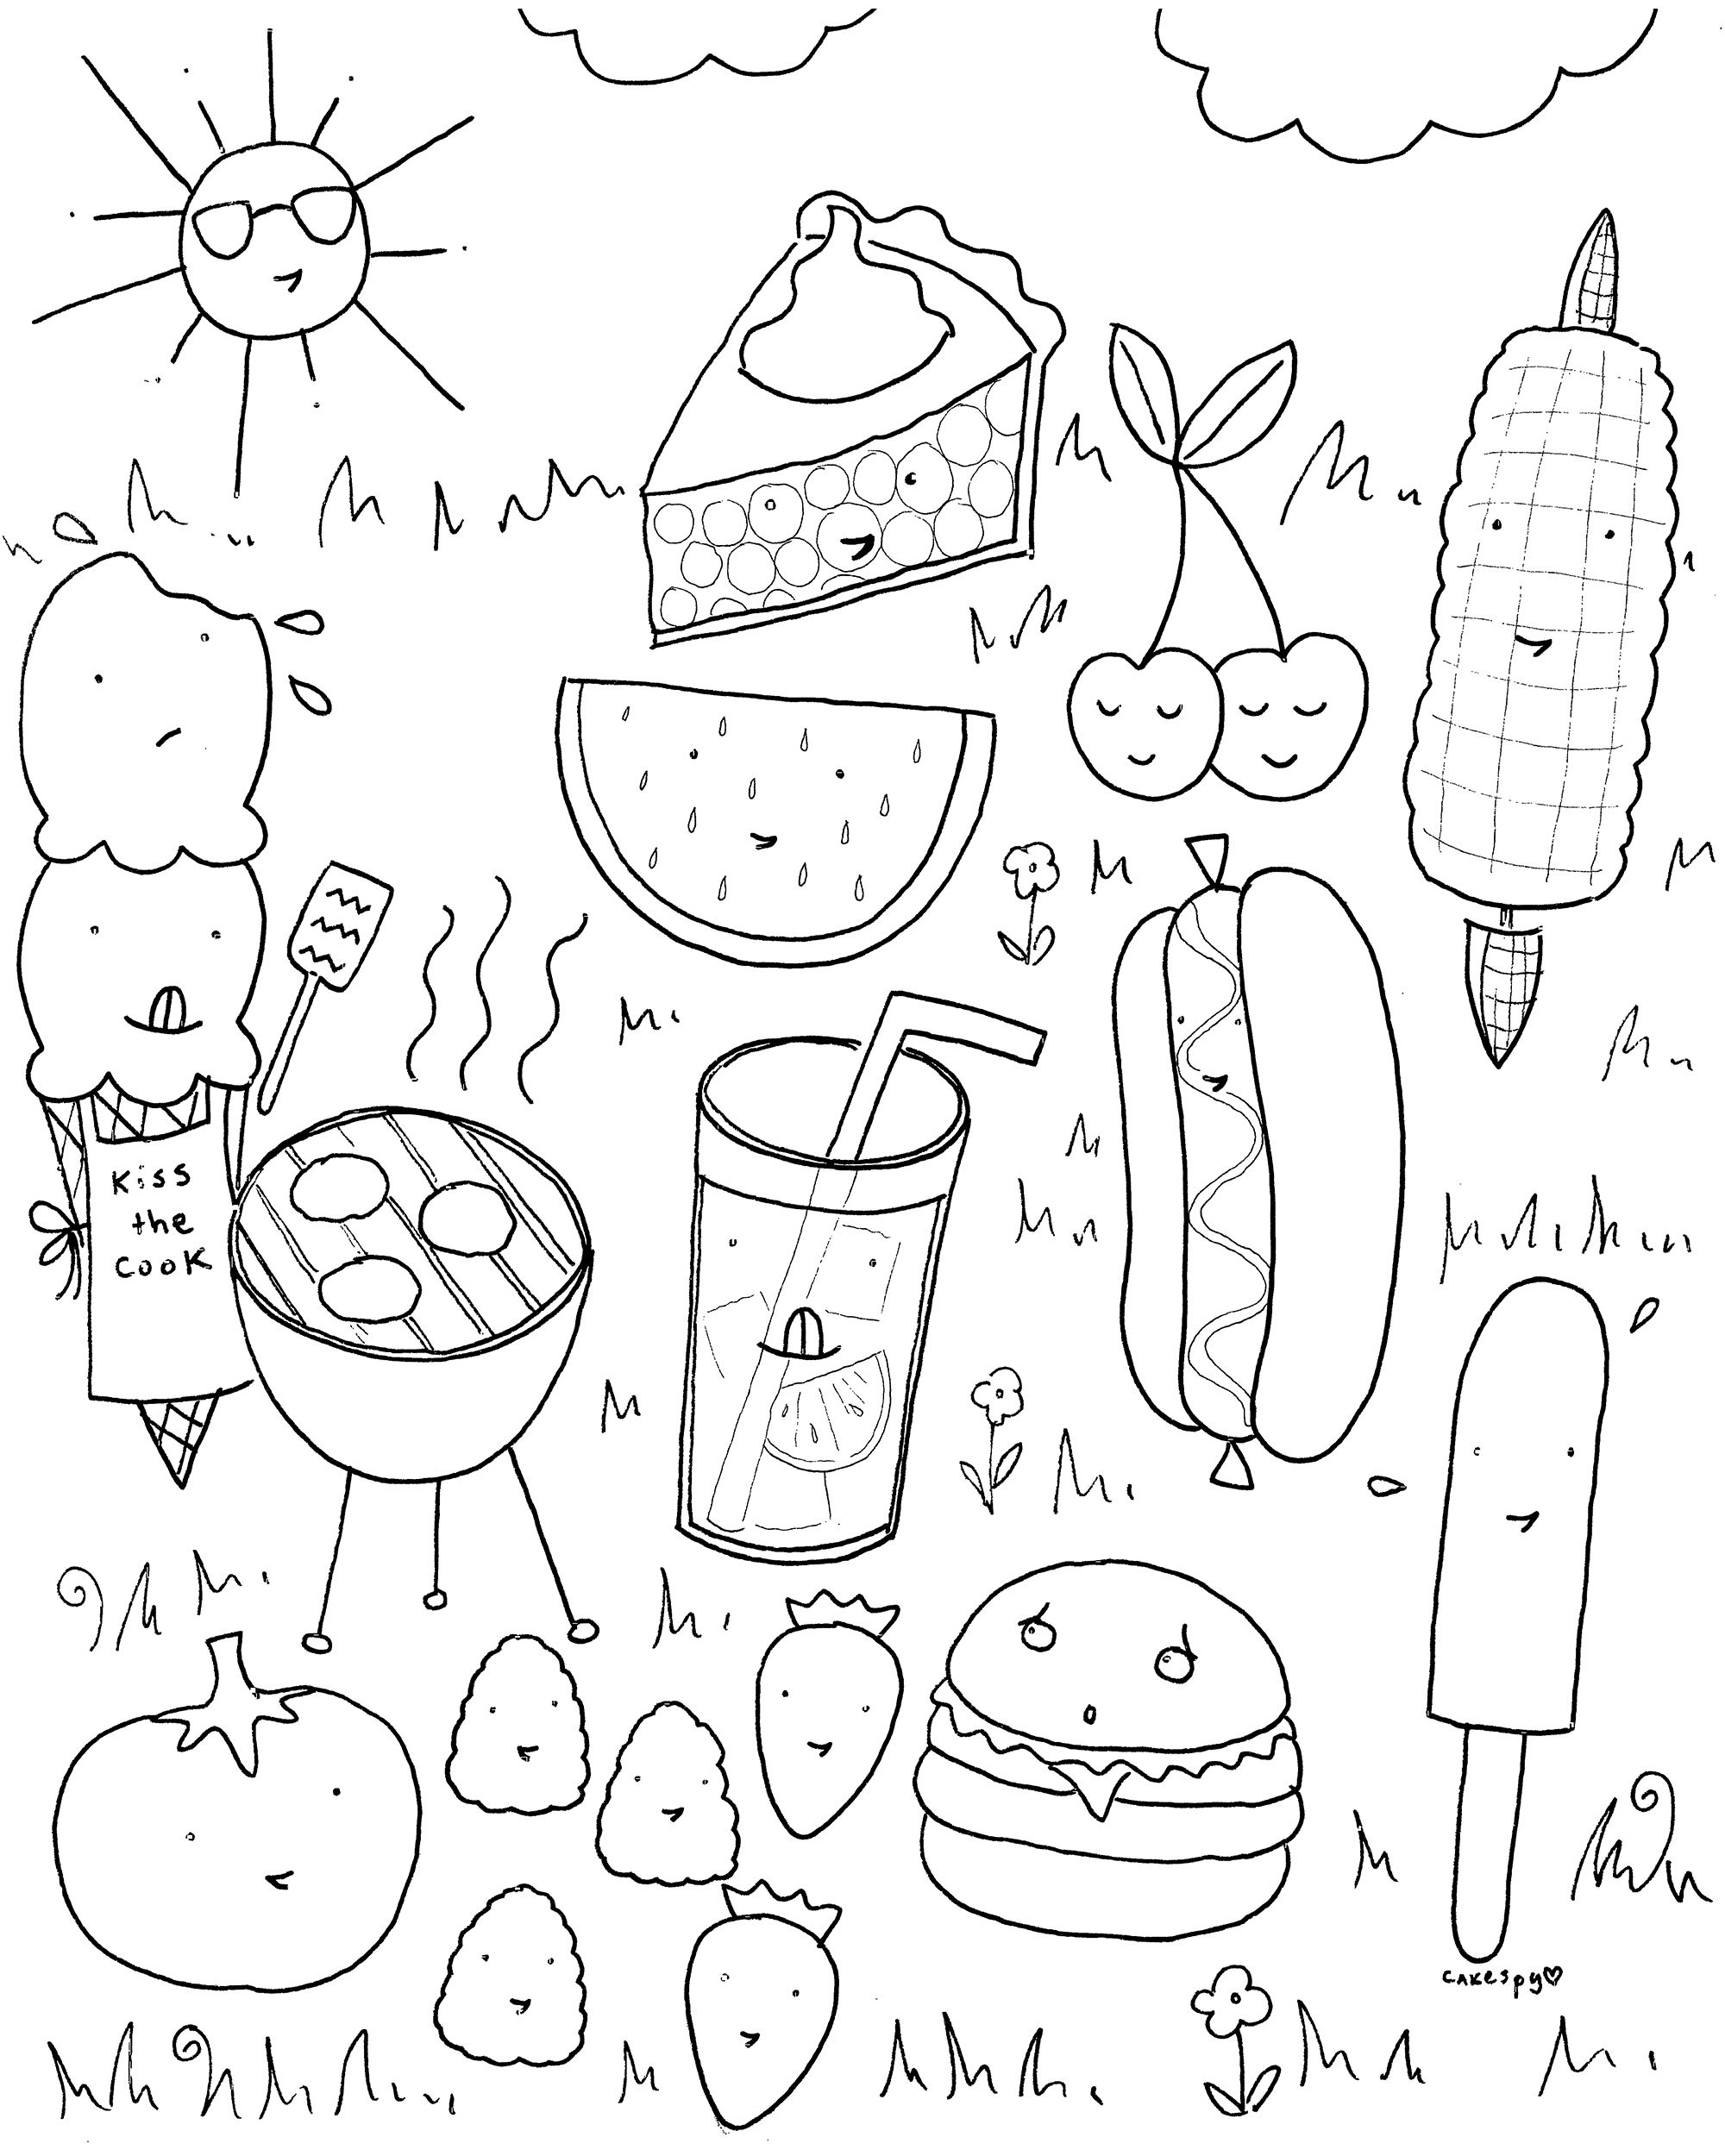 free downloadable summer fun coloring book pages - Free And Fun Coloring Pages